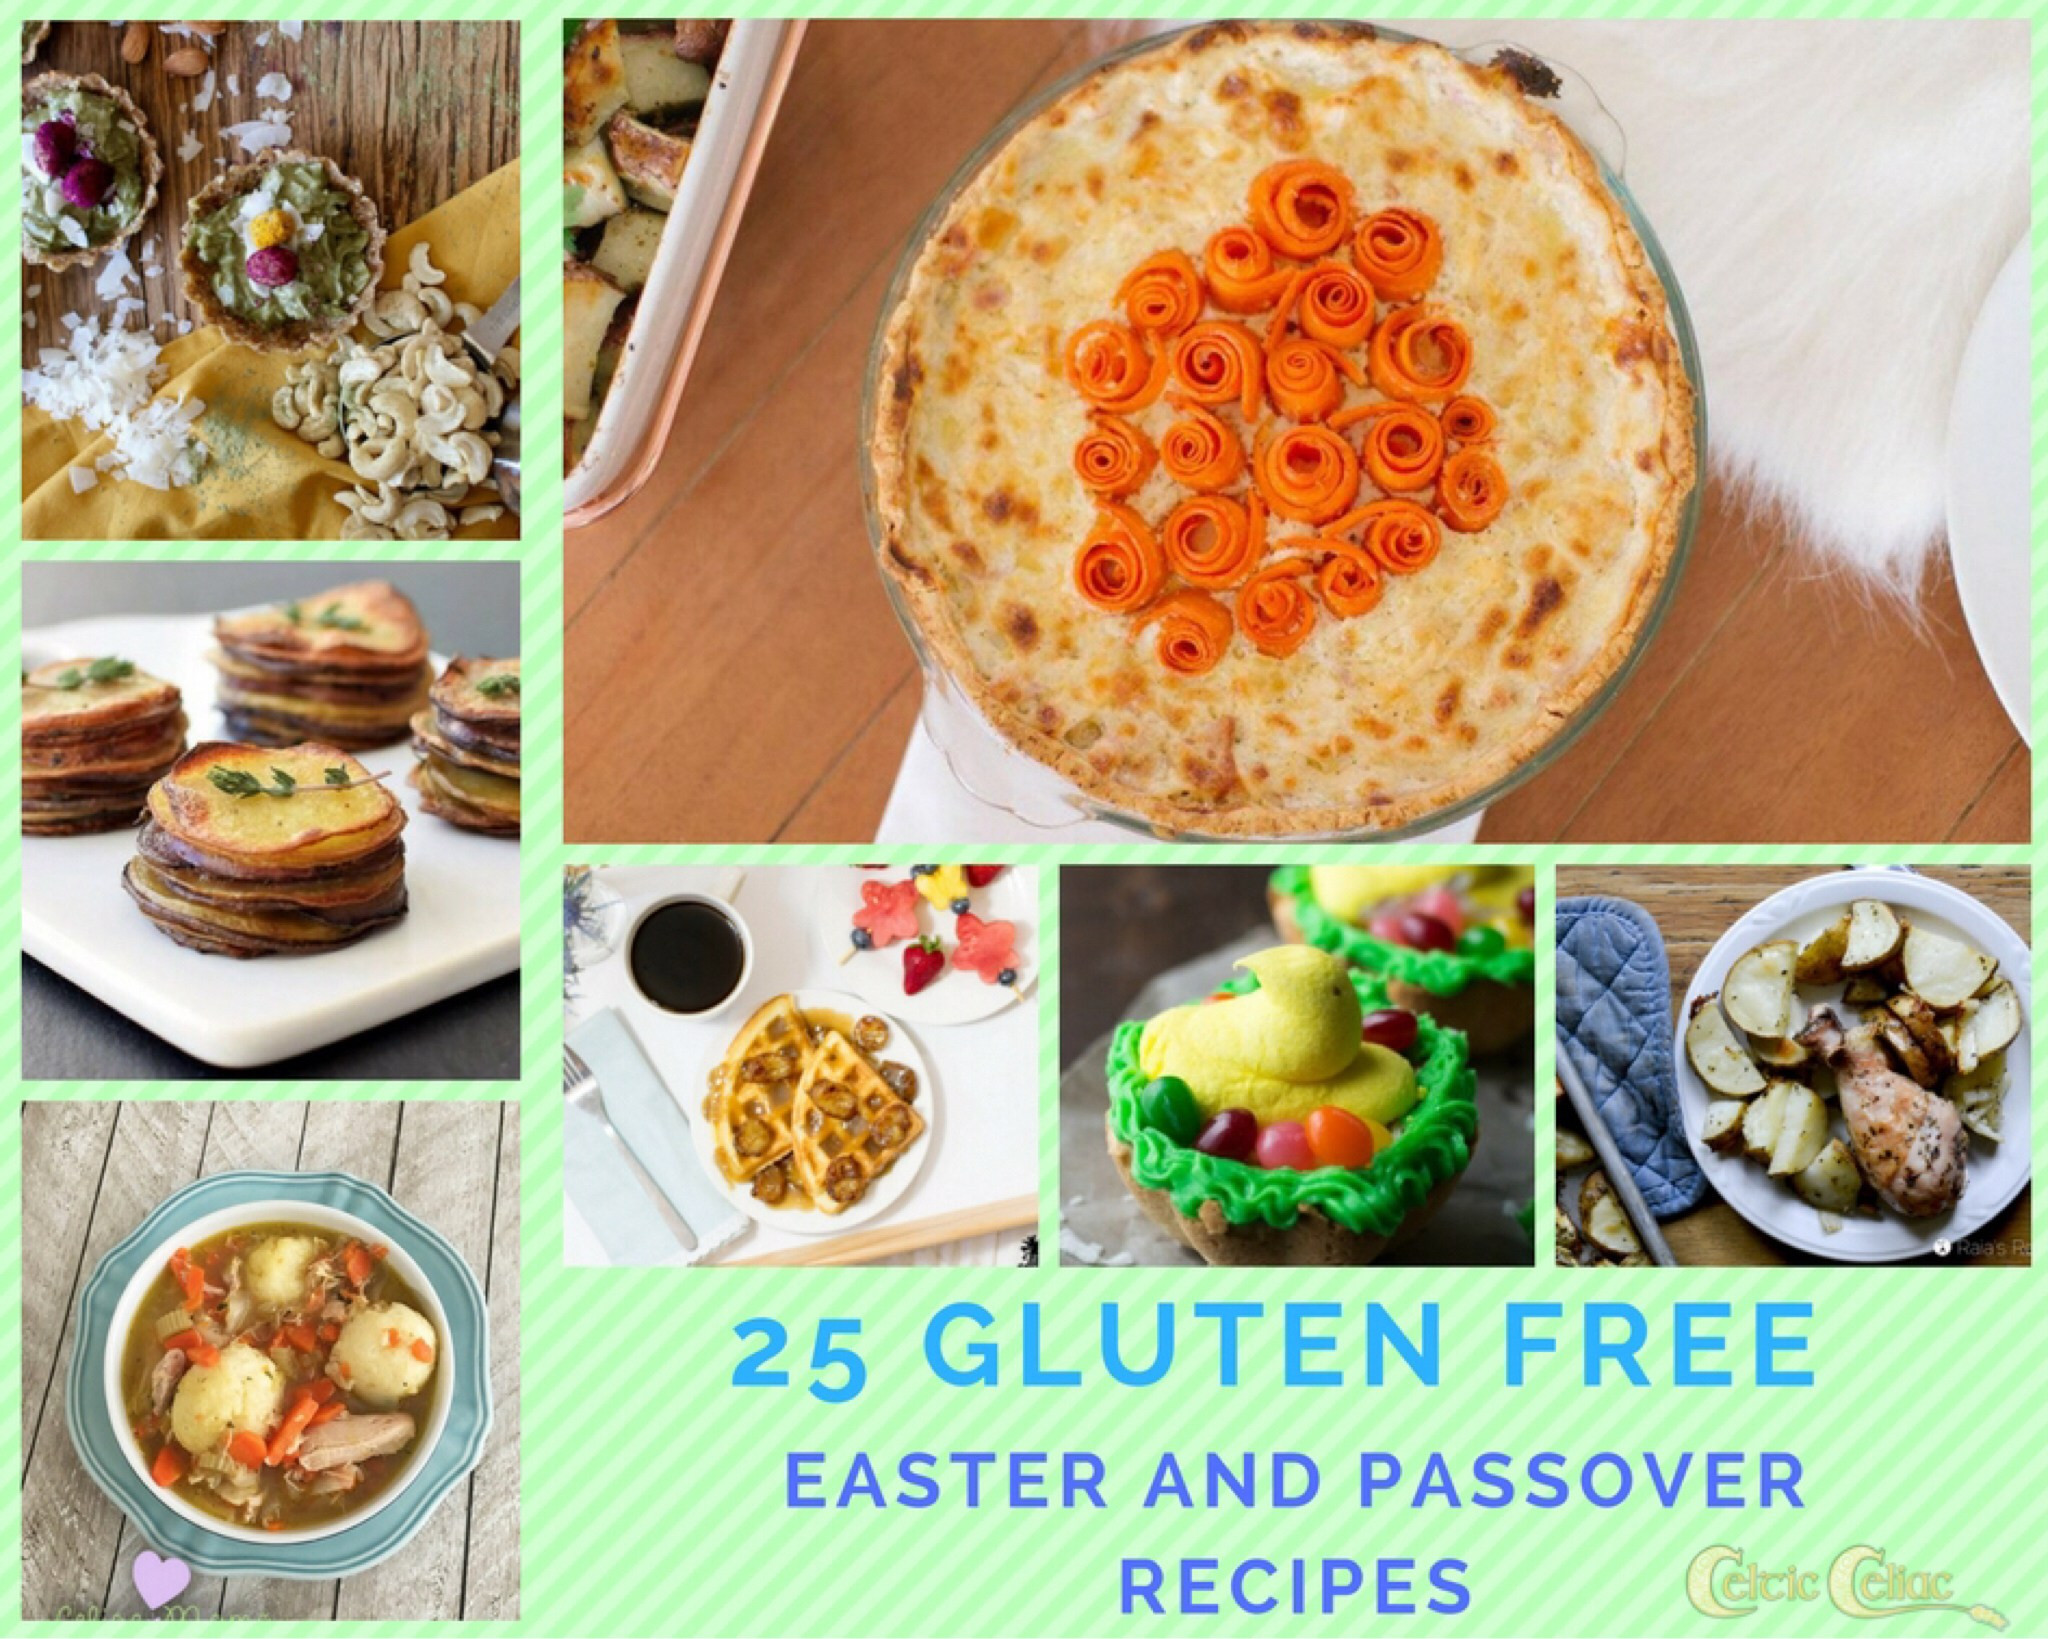 Gluten Free Passover Recipes  25 Gluten Free Recipes for Easter and Passover